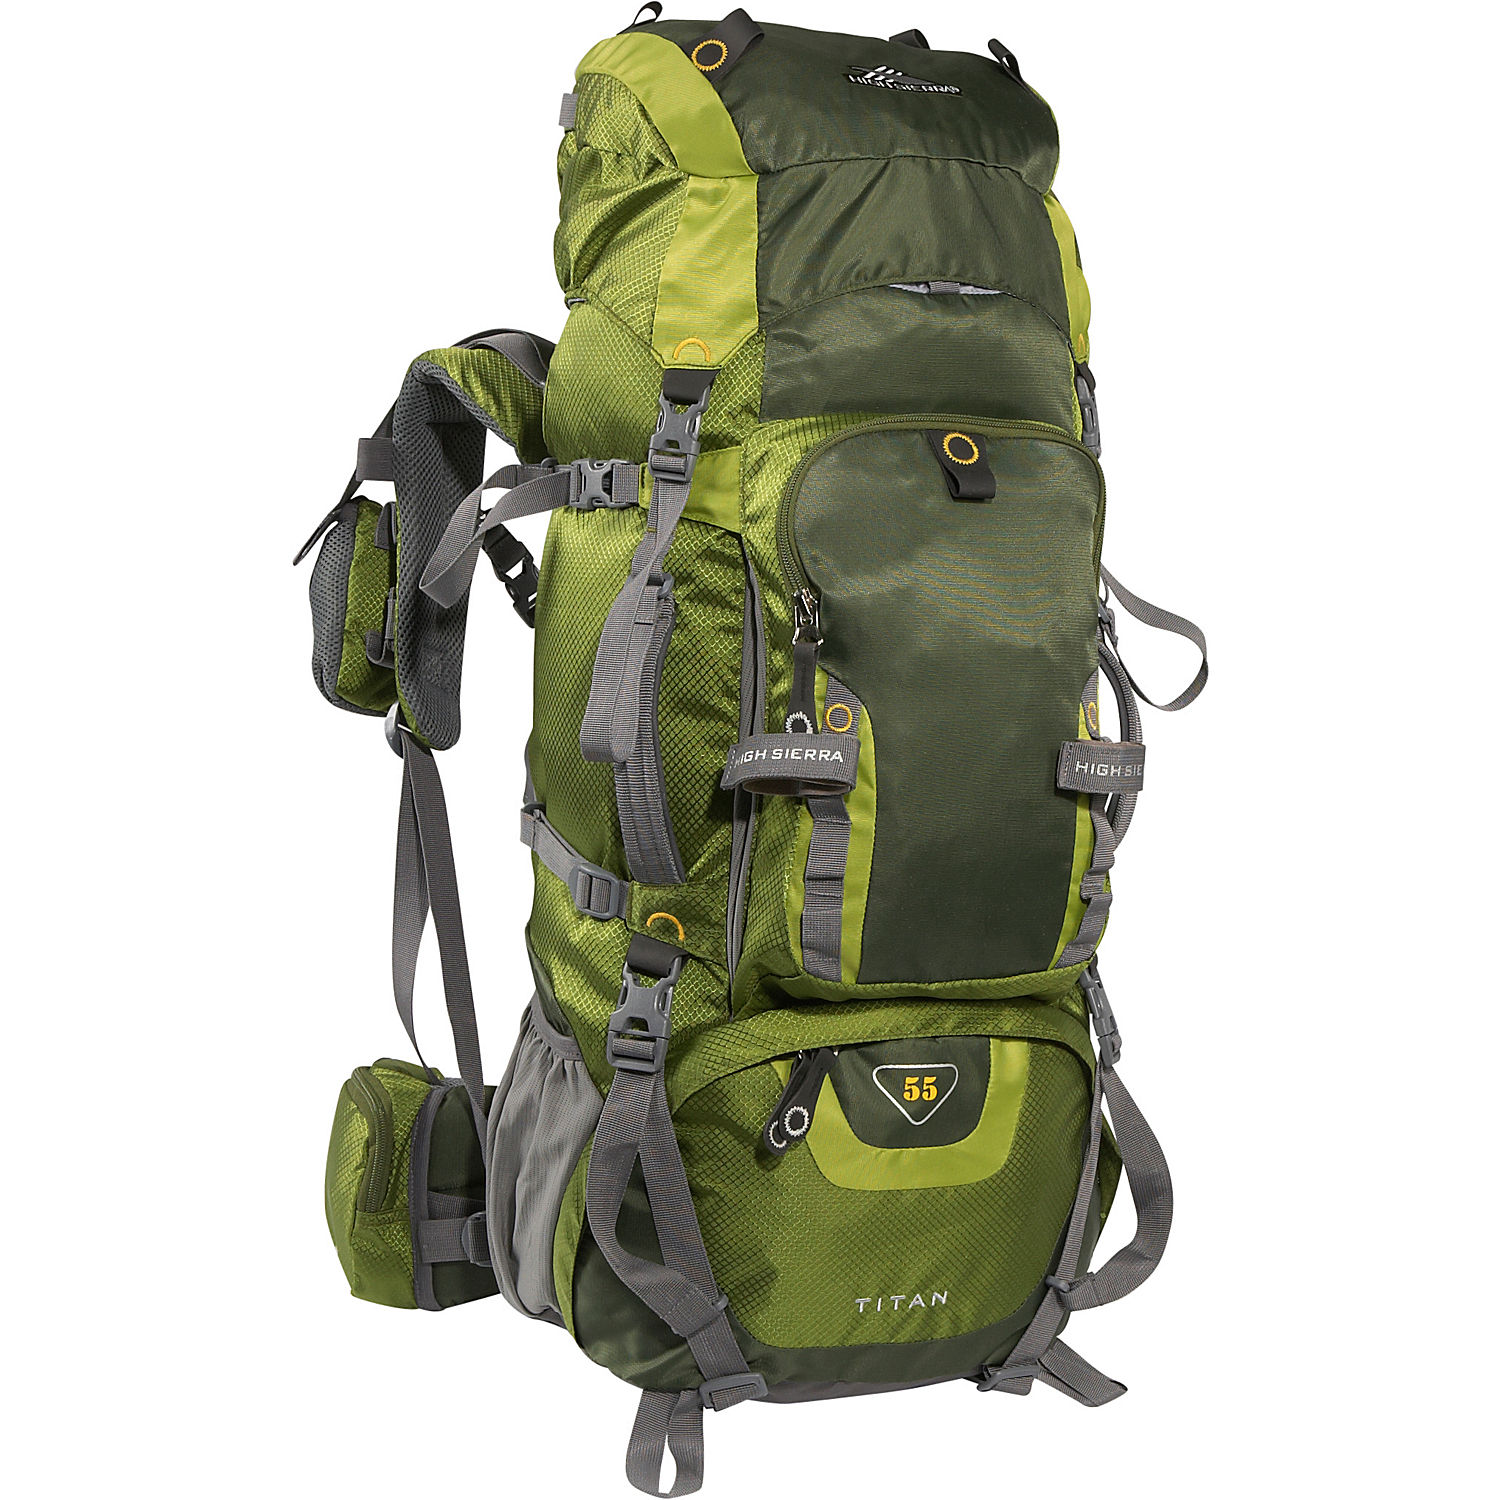 Camping Hiking Backpacking: High Sierra Titan 55 Pack